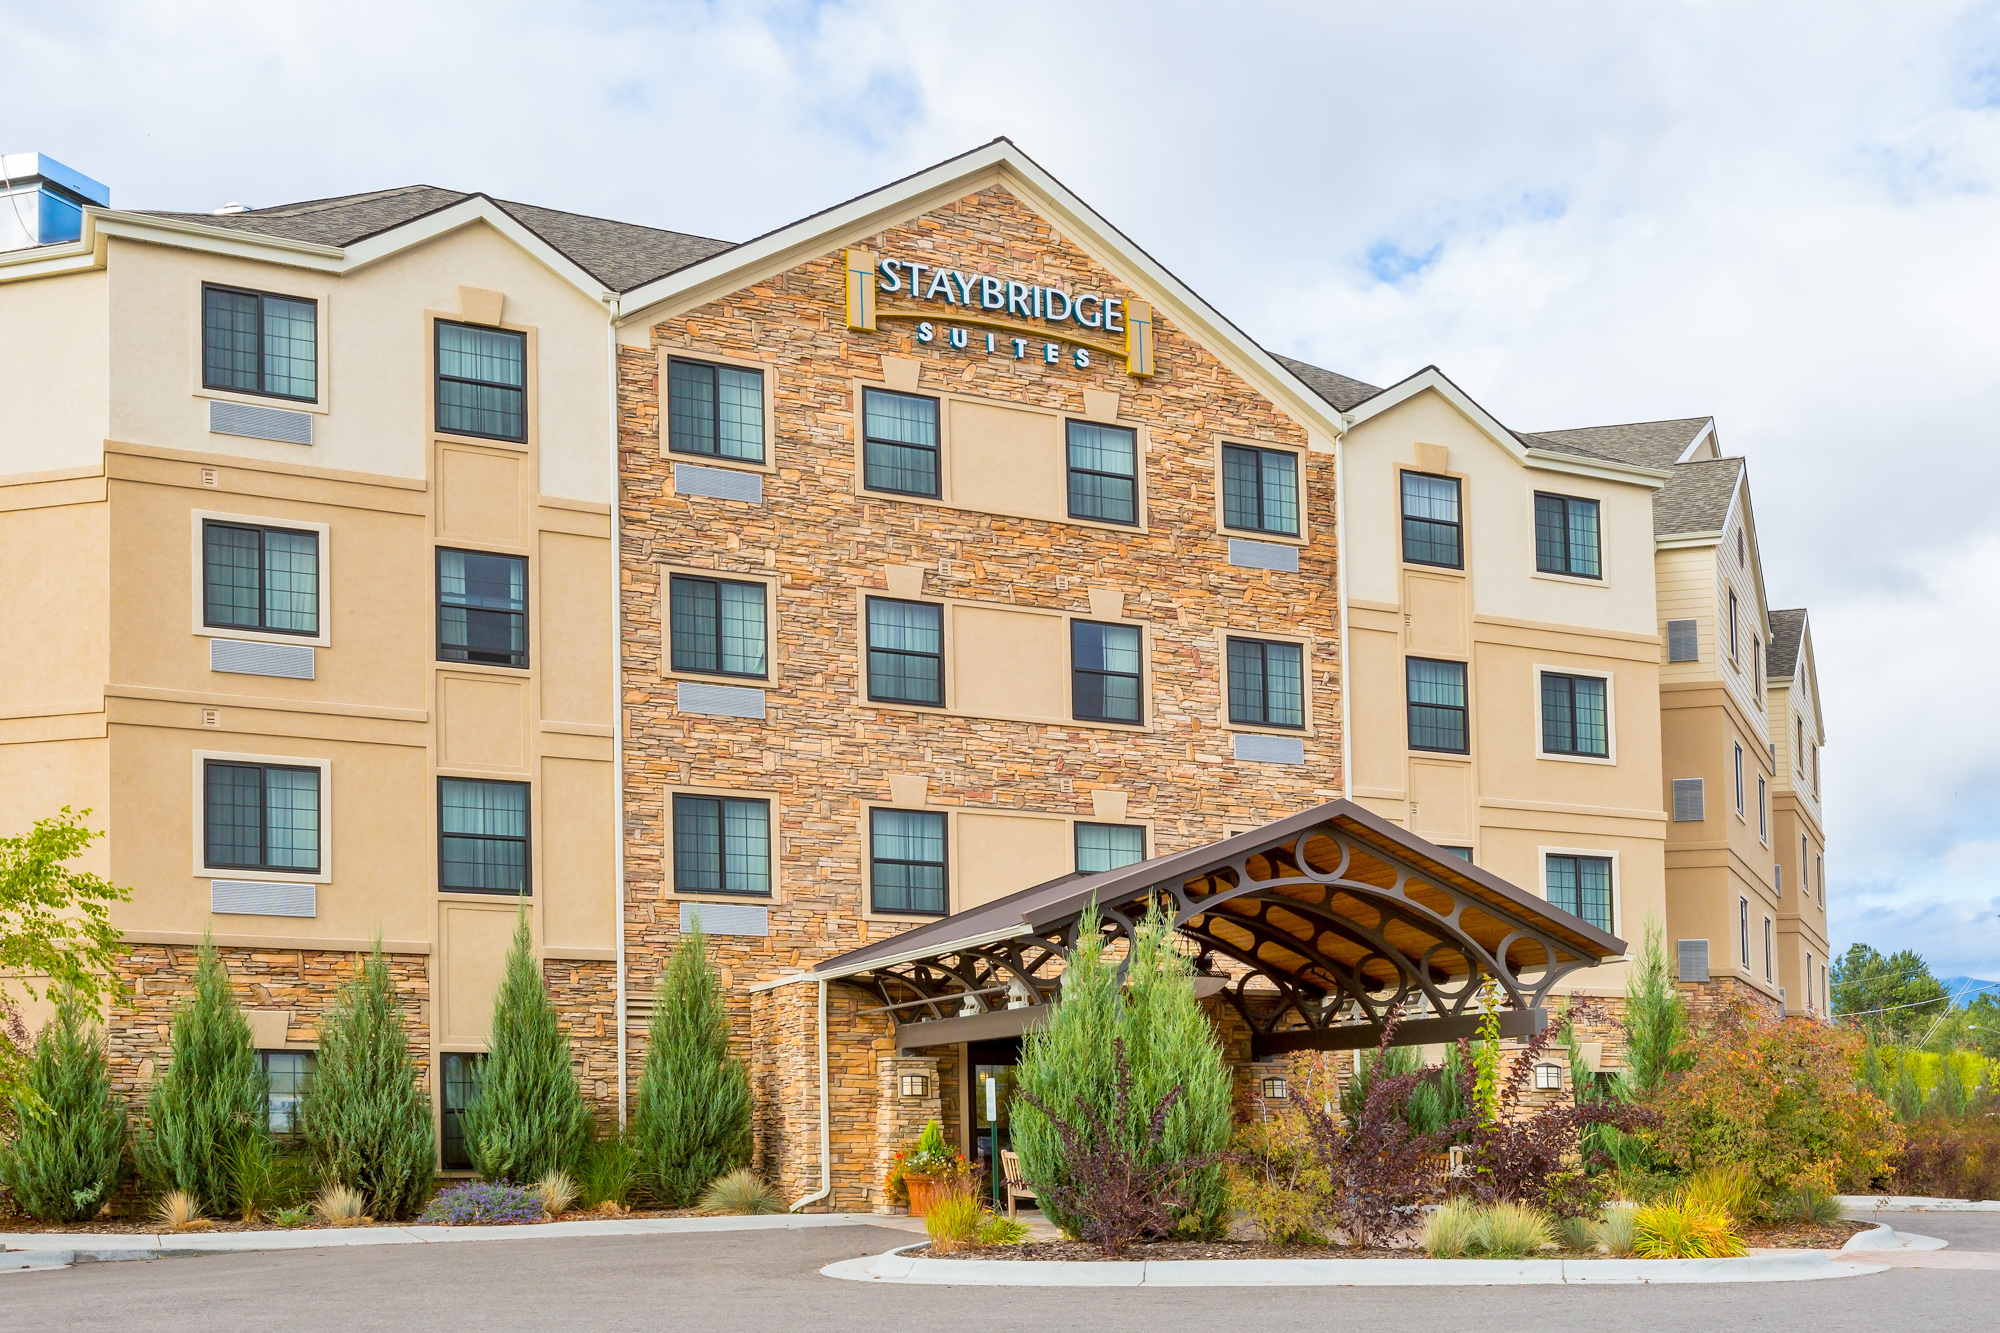 Staybridge Suites - Missoula, MT